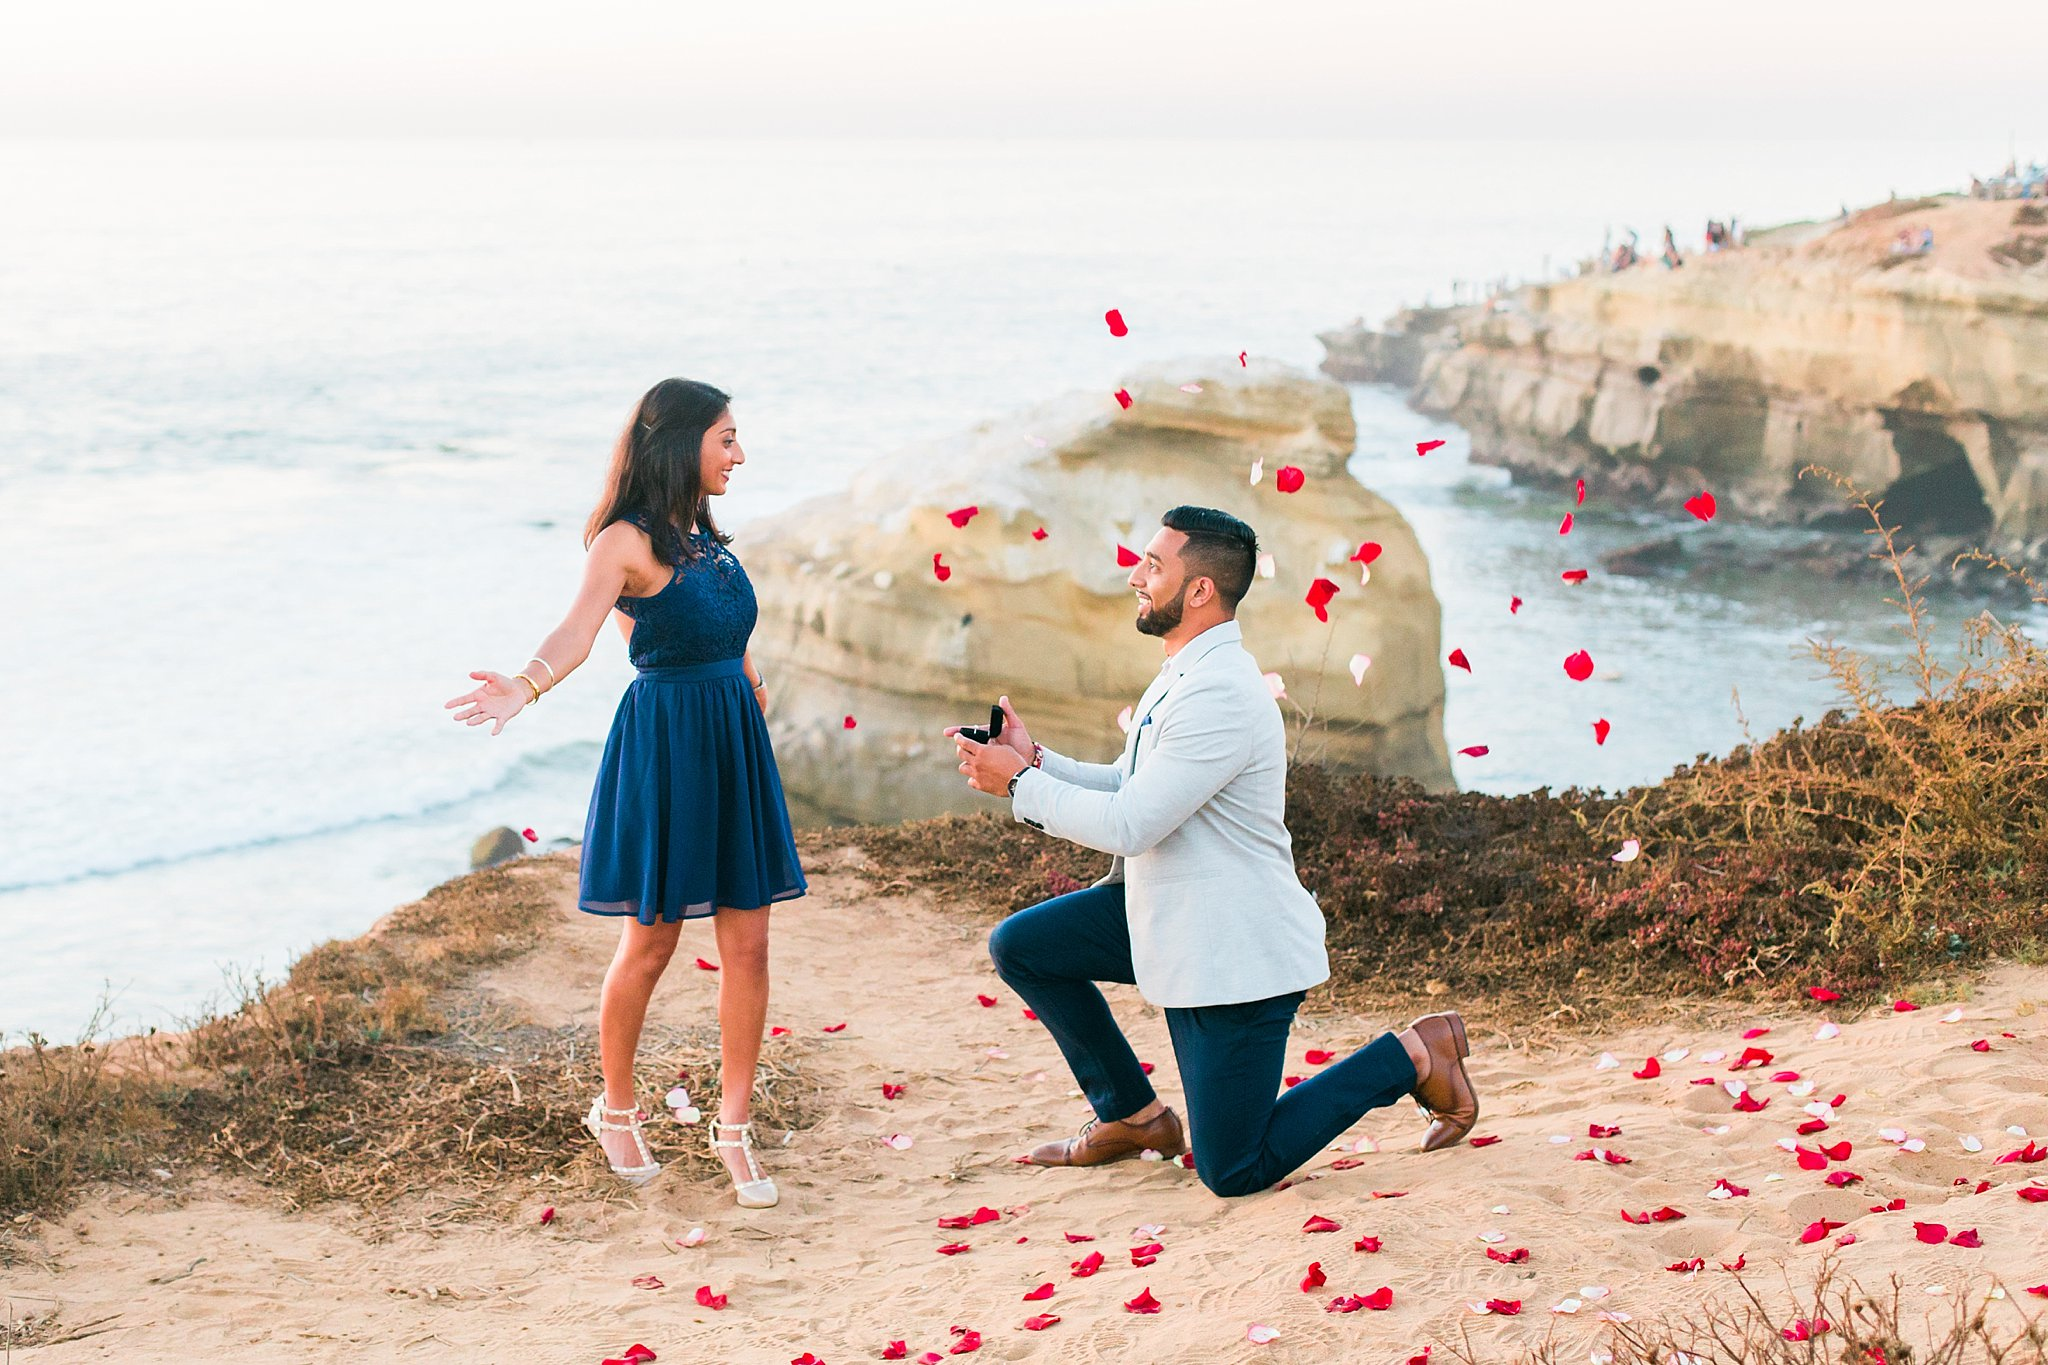 Sunset Cliffs Surprise Proposal   Shreya and Sagar   San Diego     Sunset Cliffs Surprise Proposal   Shreya and Sagar   San Diego Surprise  Proposal Photographer     Jax Connolly